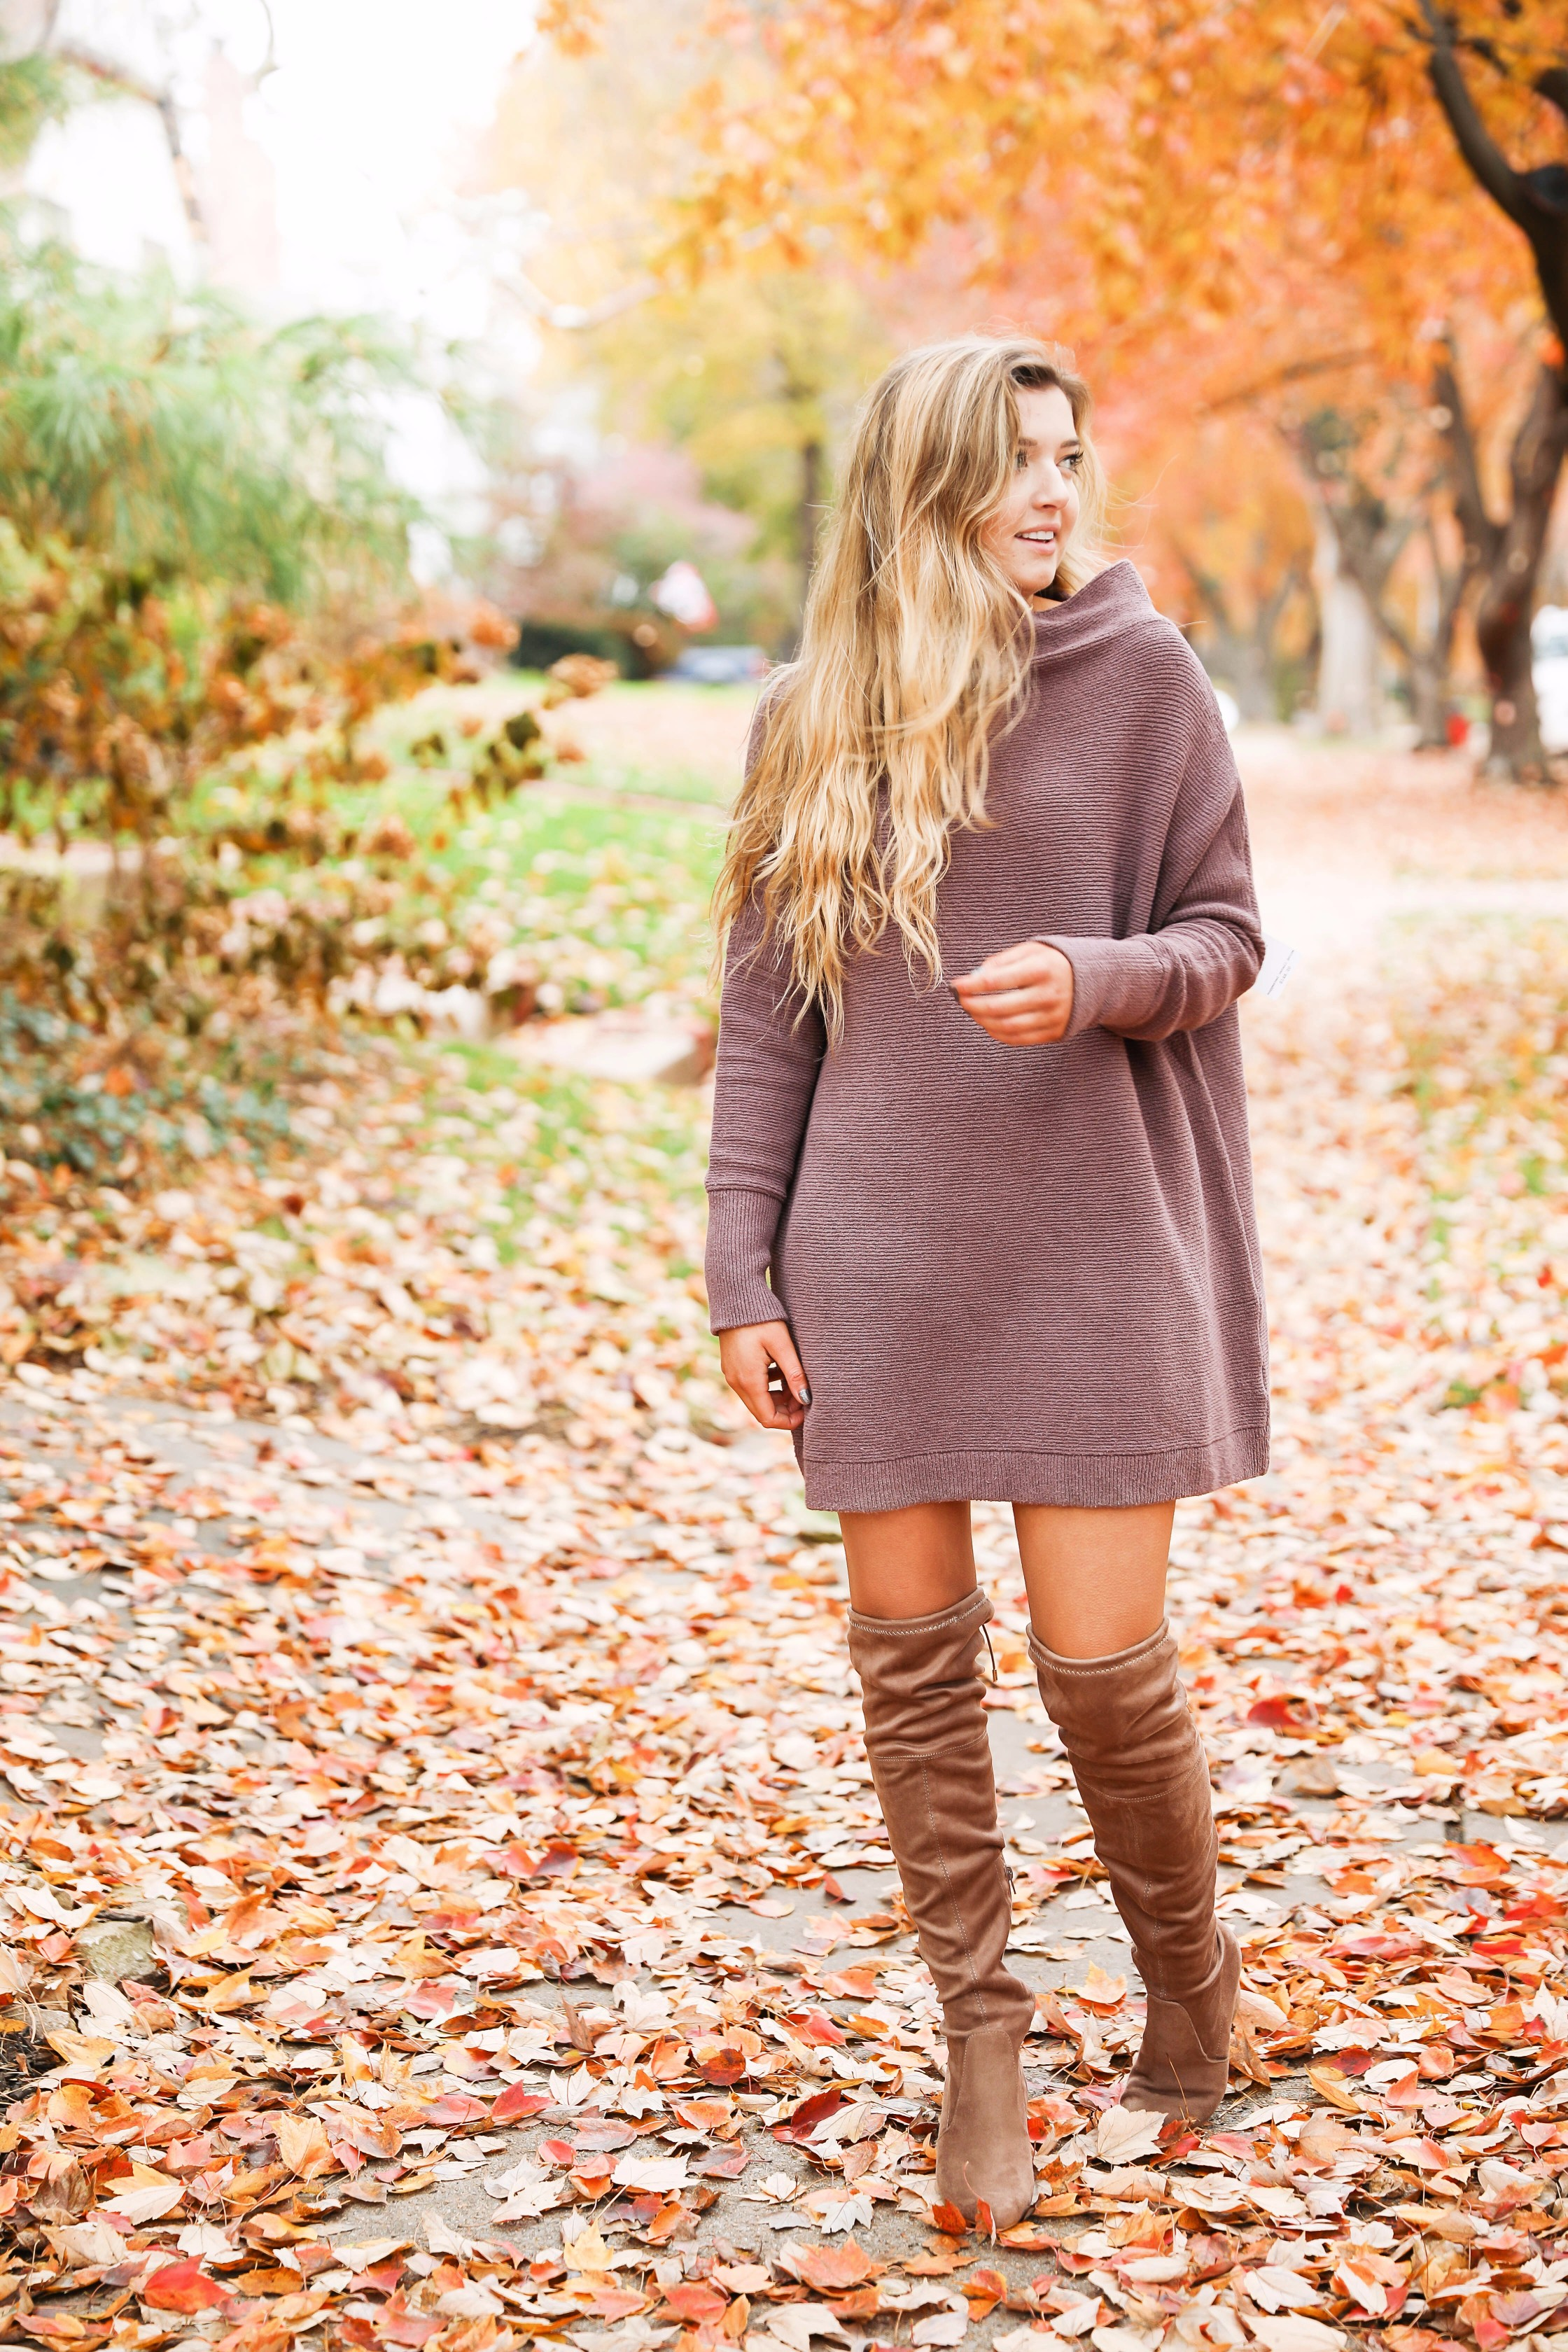 Purple free people Ottoman Slouchy Tunics weater dress! This cute fall look is perfect paired with brown suede over the knee boots! Find the details on fashion blog daily dose of charm by lauren lindmark